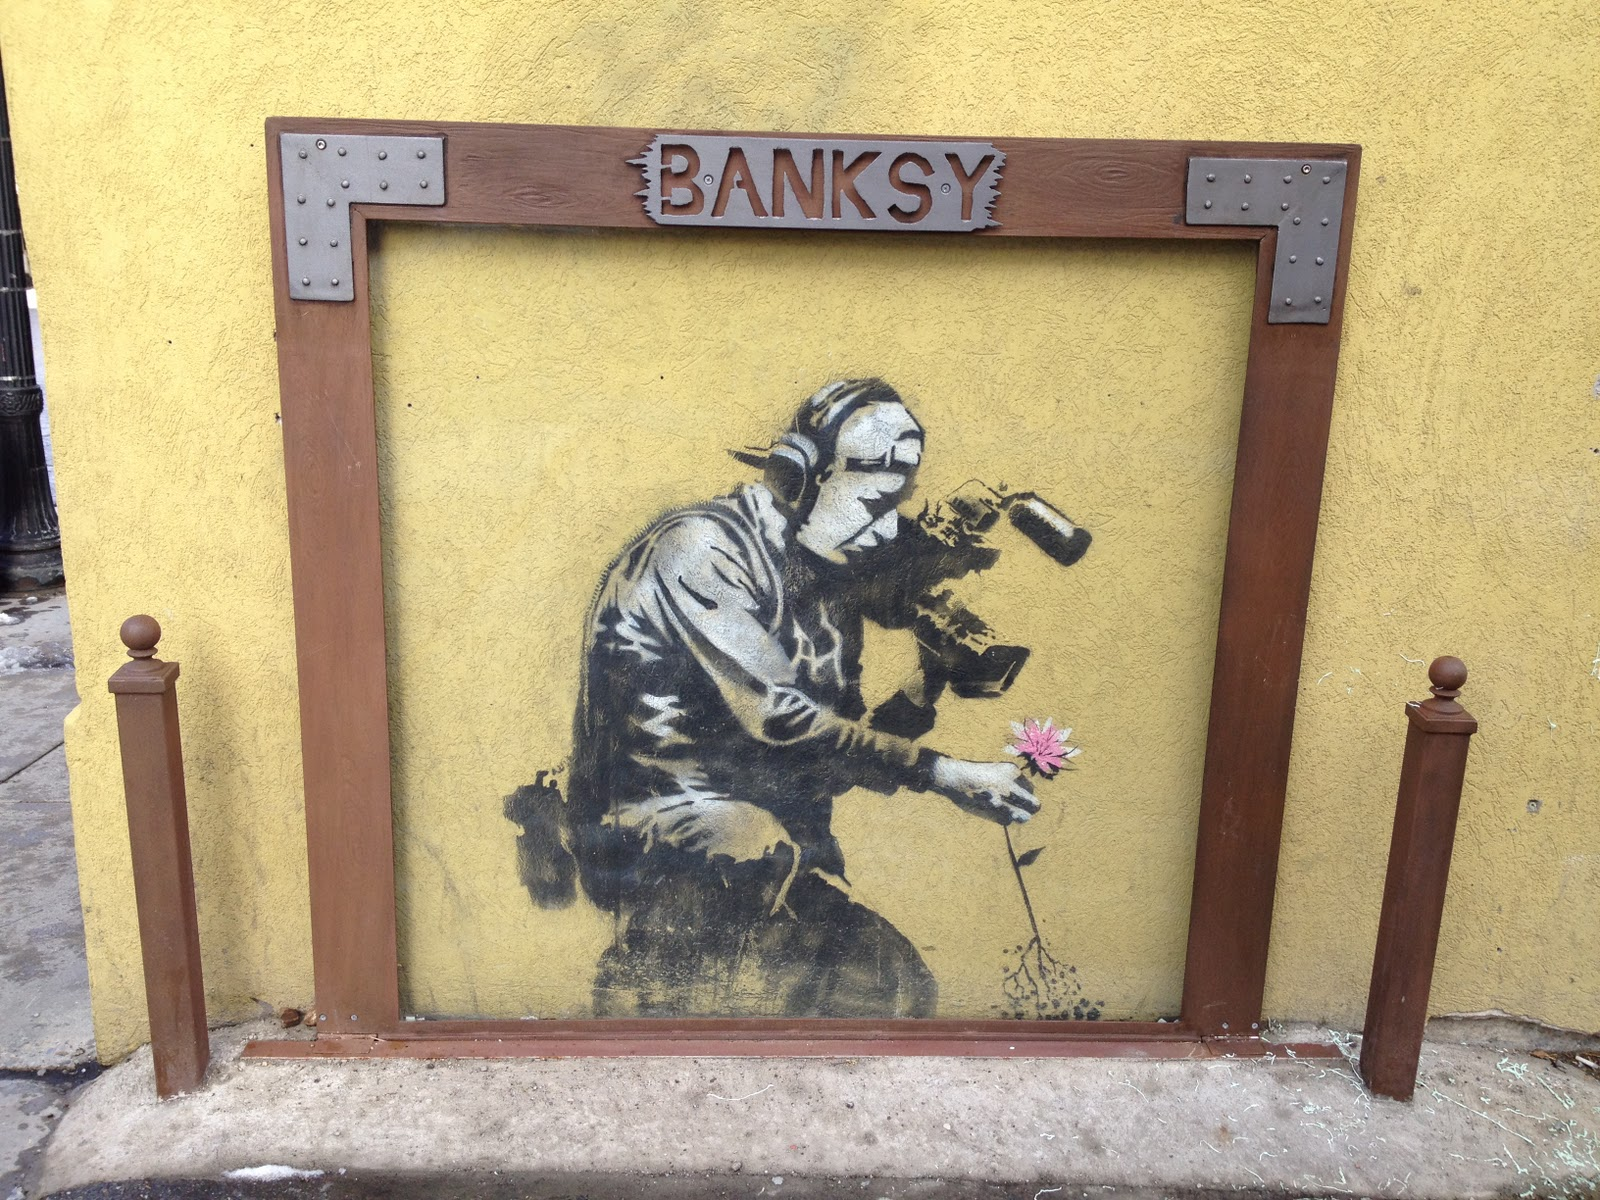 My Scenic Byway: Banksy in Park City